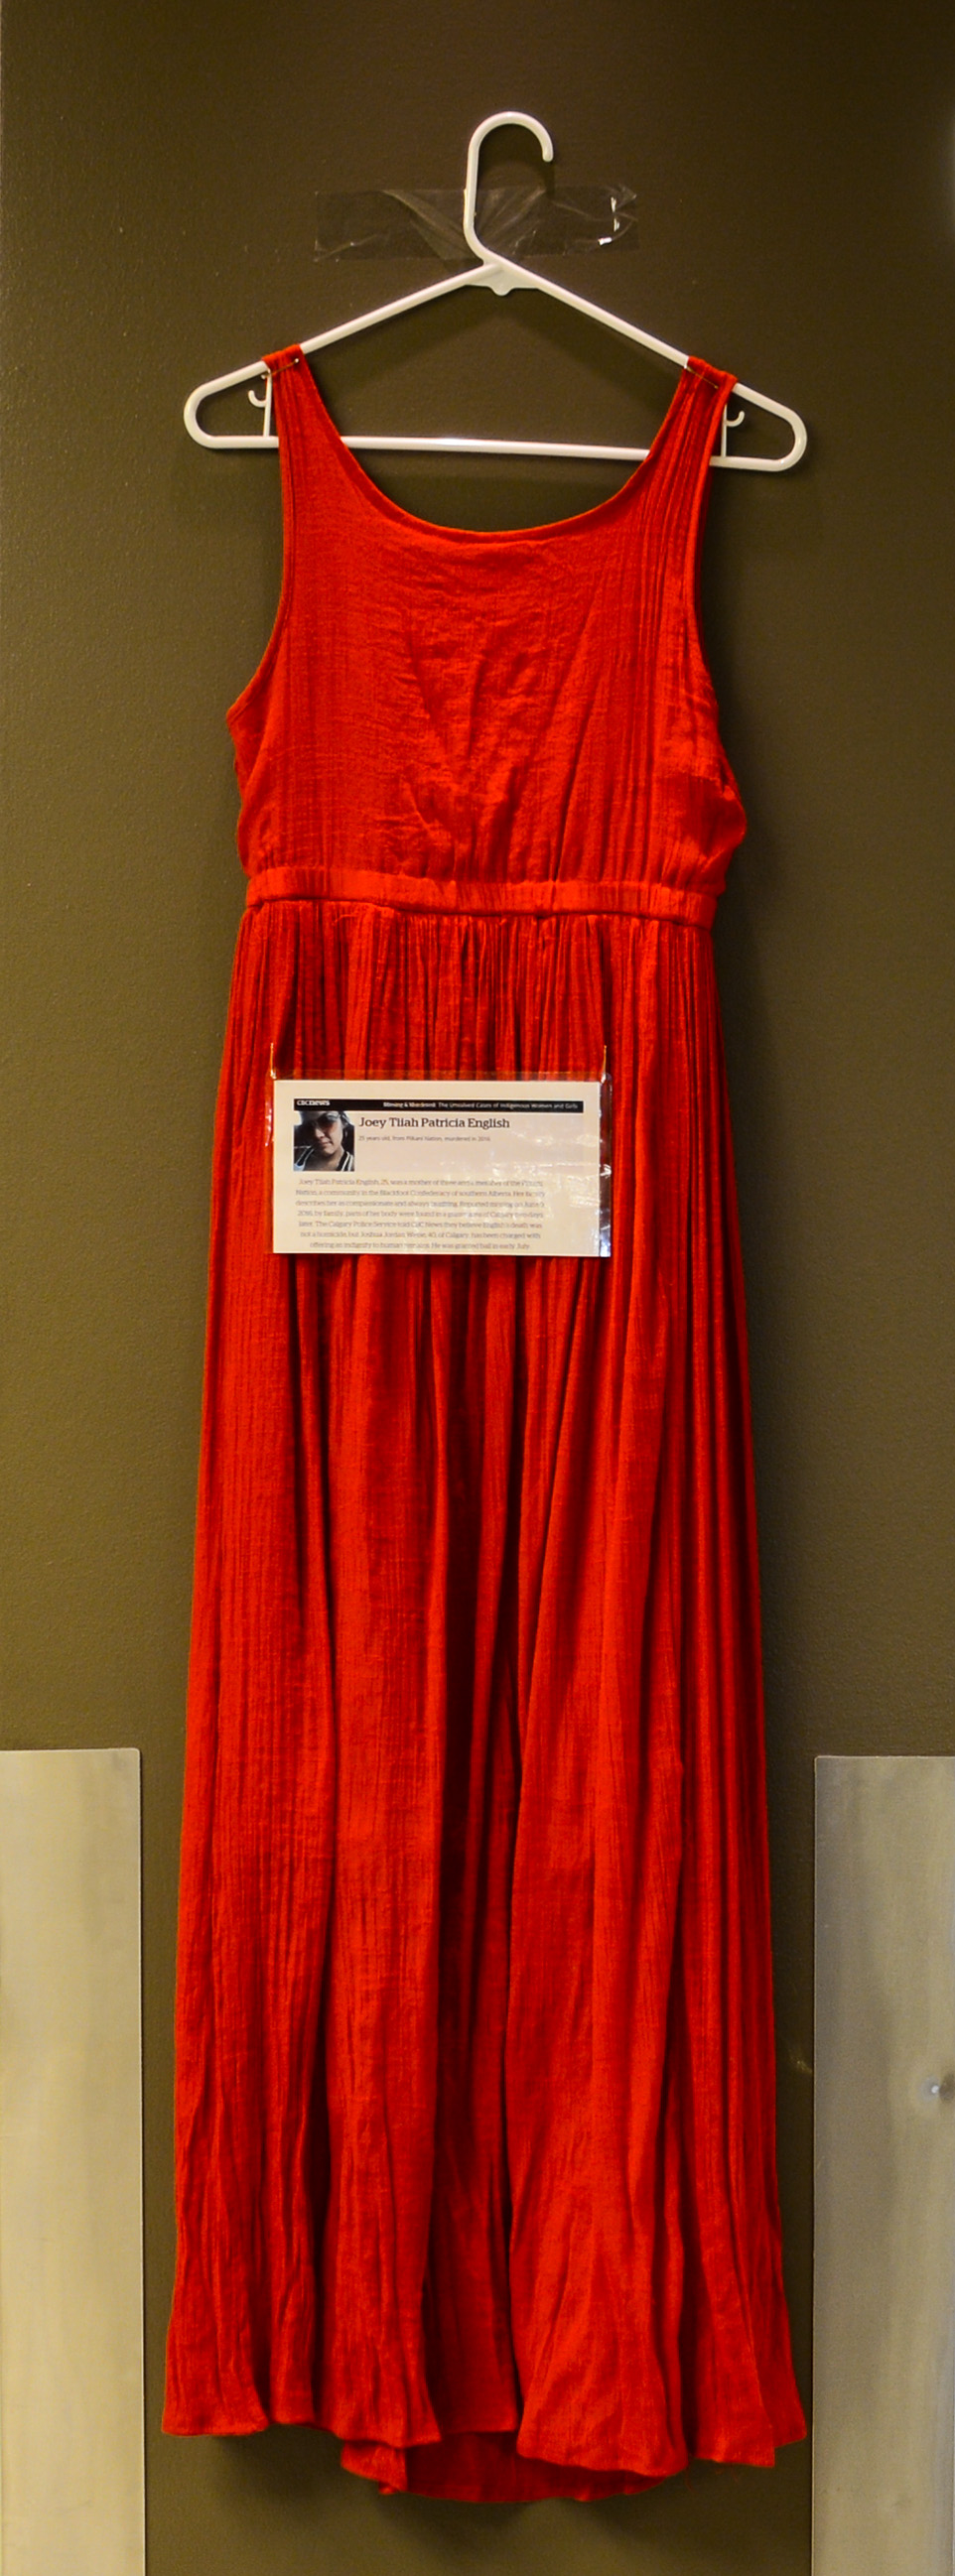 Ghosts In Red: The red dress hung in memory of Joey Tiiha Patricia English at the ground floor of SAIT's Senator Burns Building, Dec. 2, 2016. (Photo by Lucas Lyons/SAIT Polytechnic